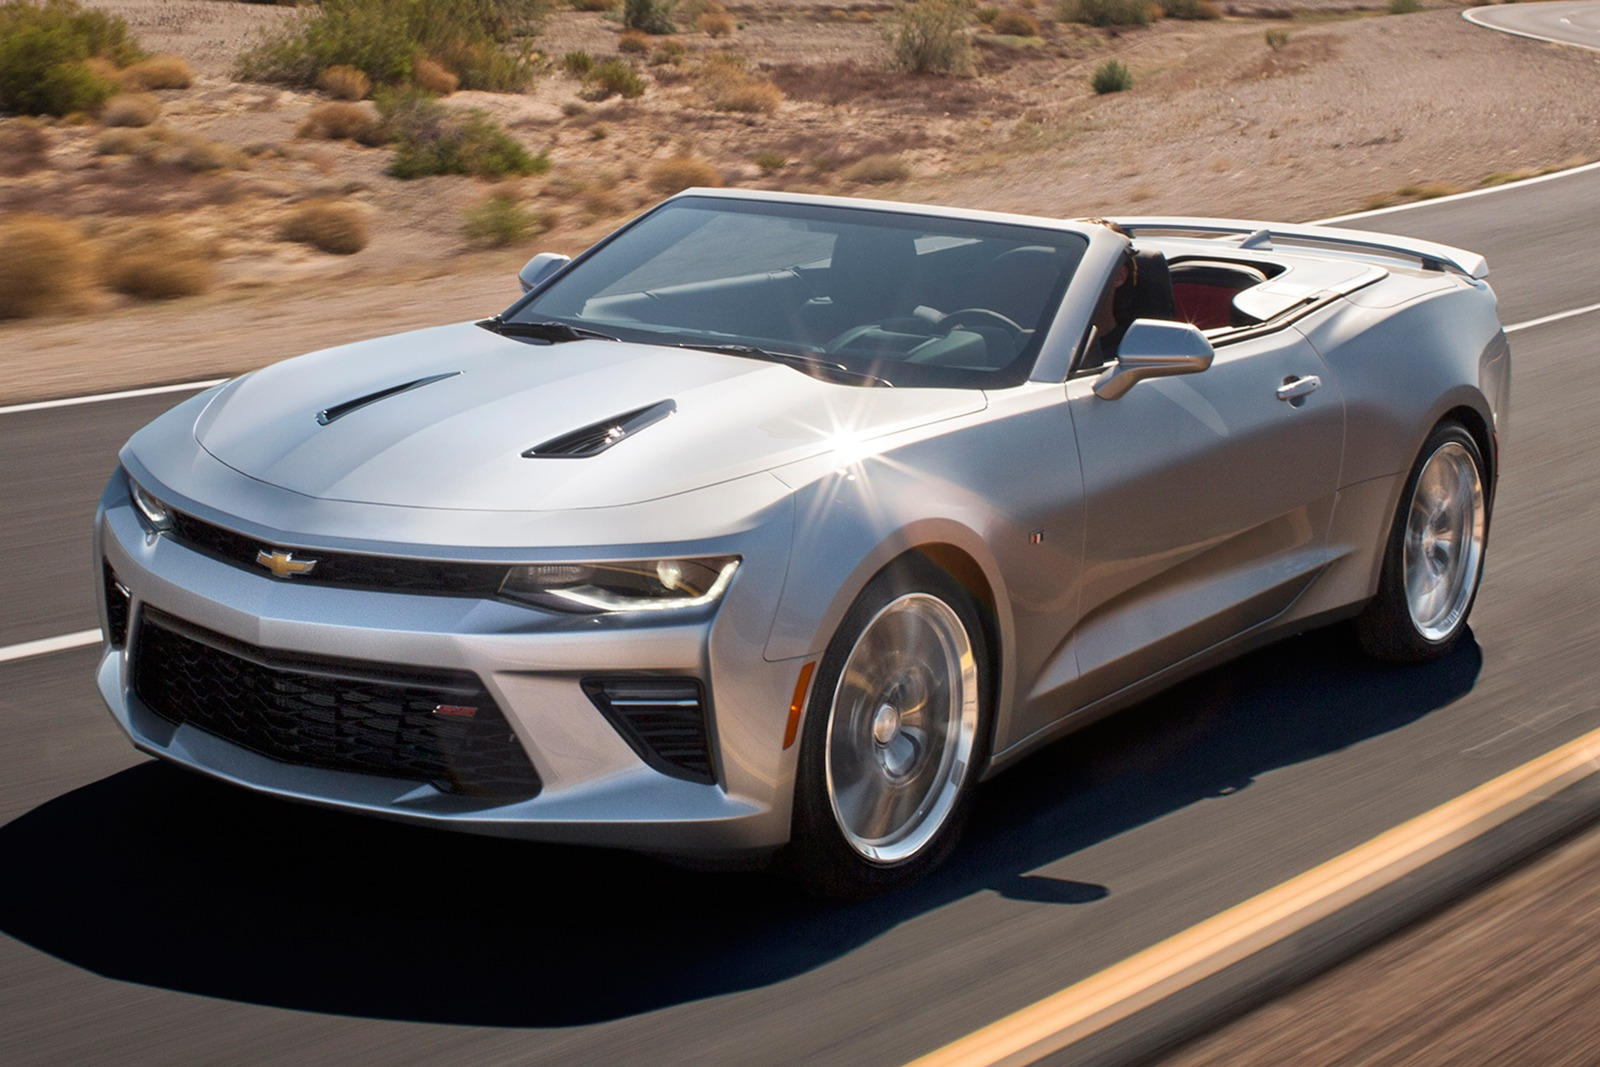 2018 Chevrolet Camaro Convertible Review, Trims, Specs and Price ...